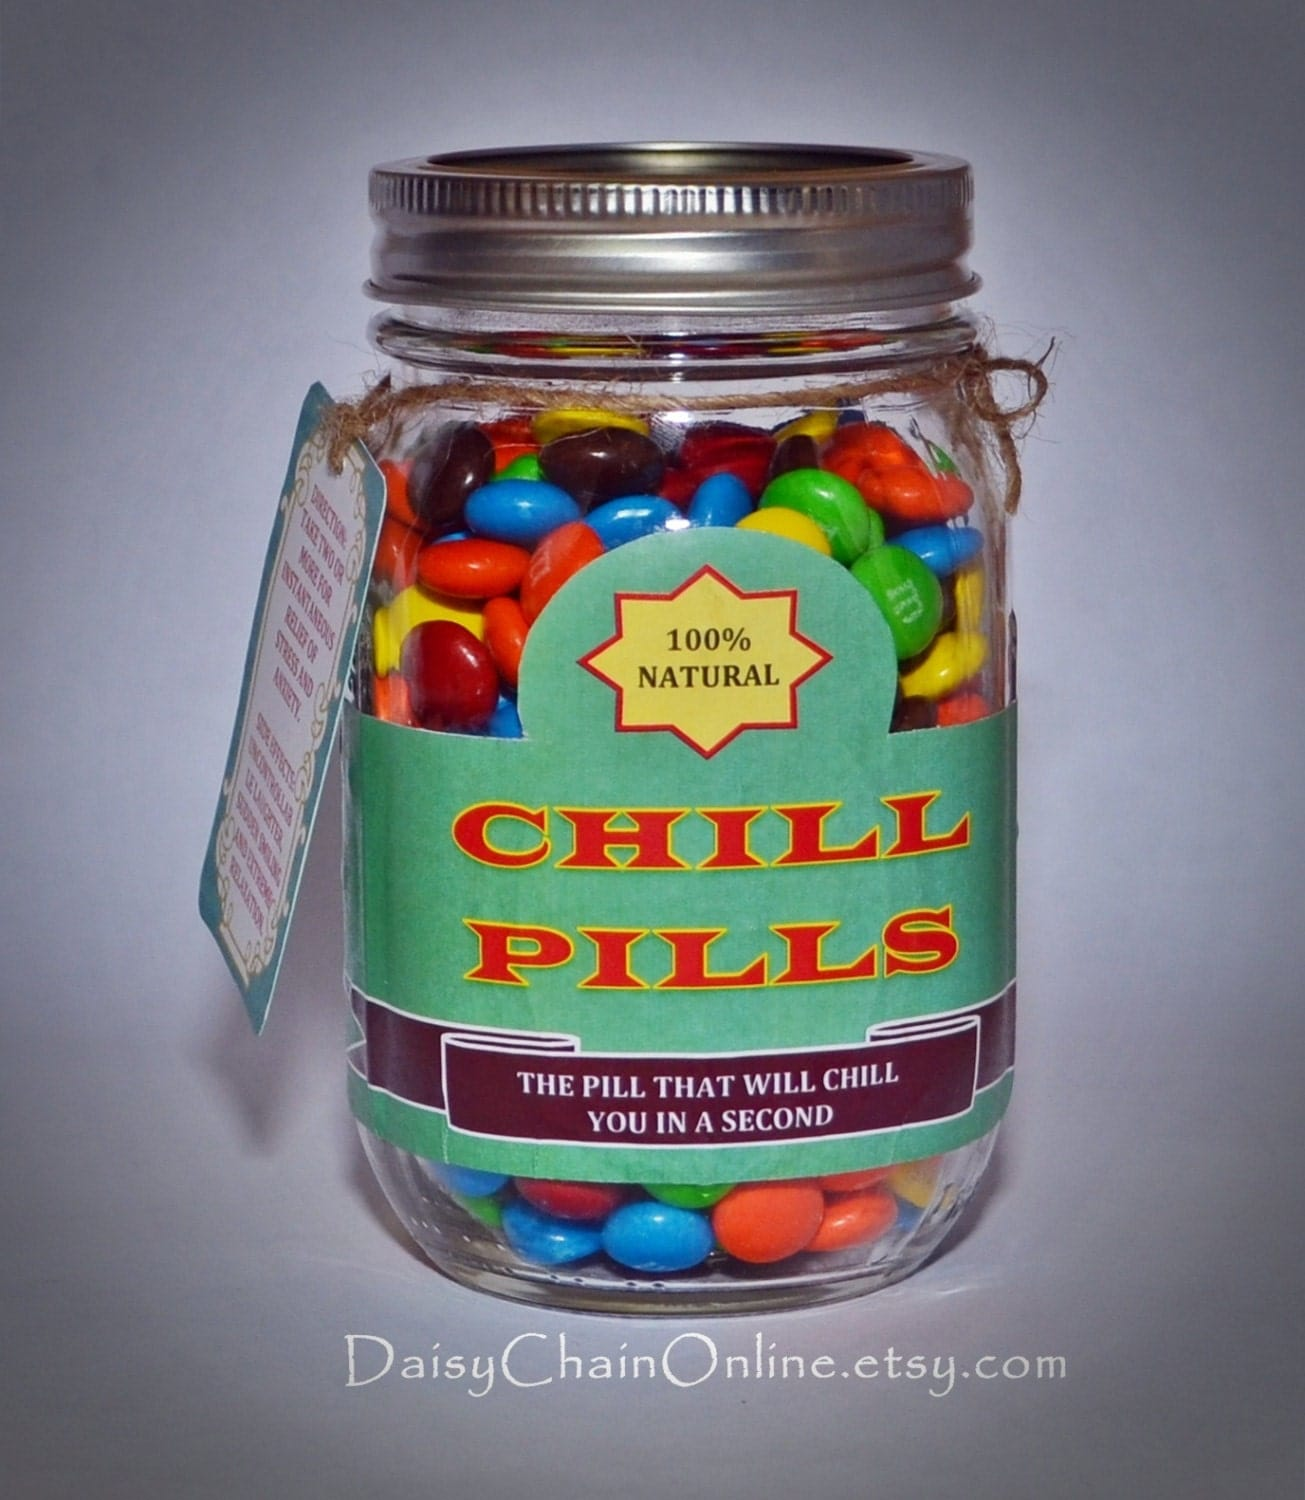 Printable labels for diy a jar of chill pill diy for Homemade gifts in a jar for men